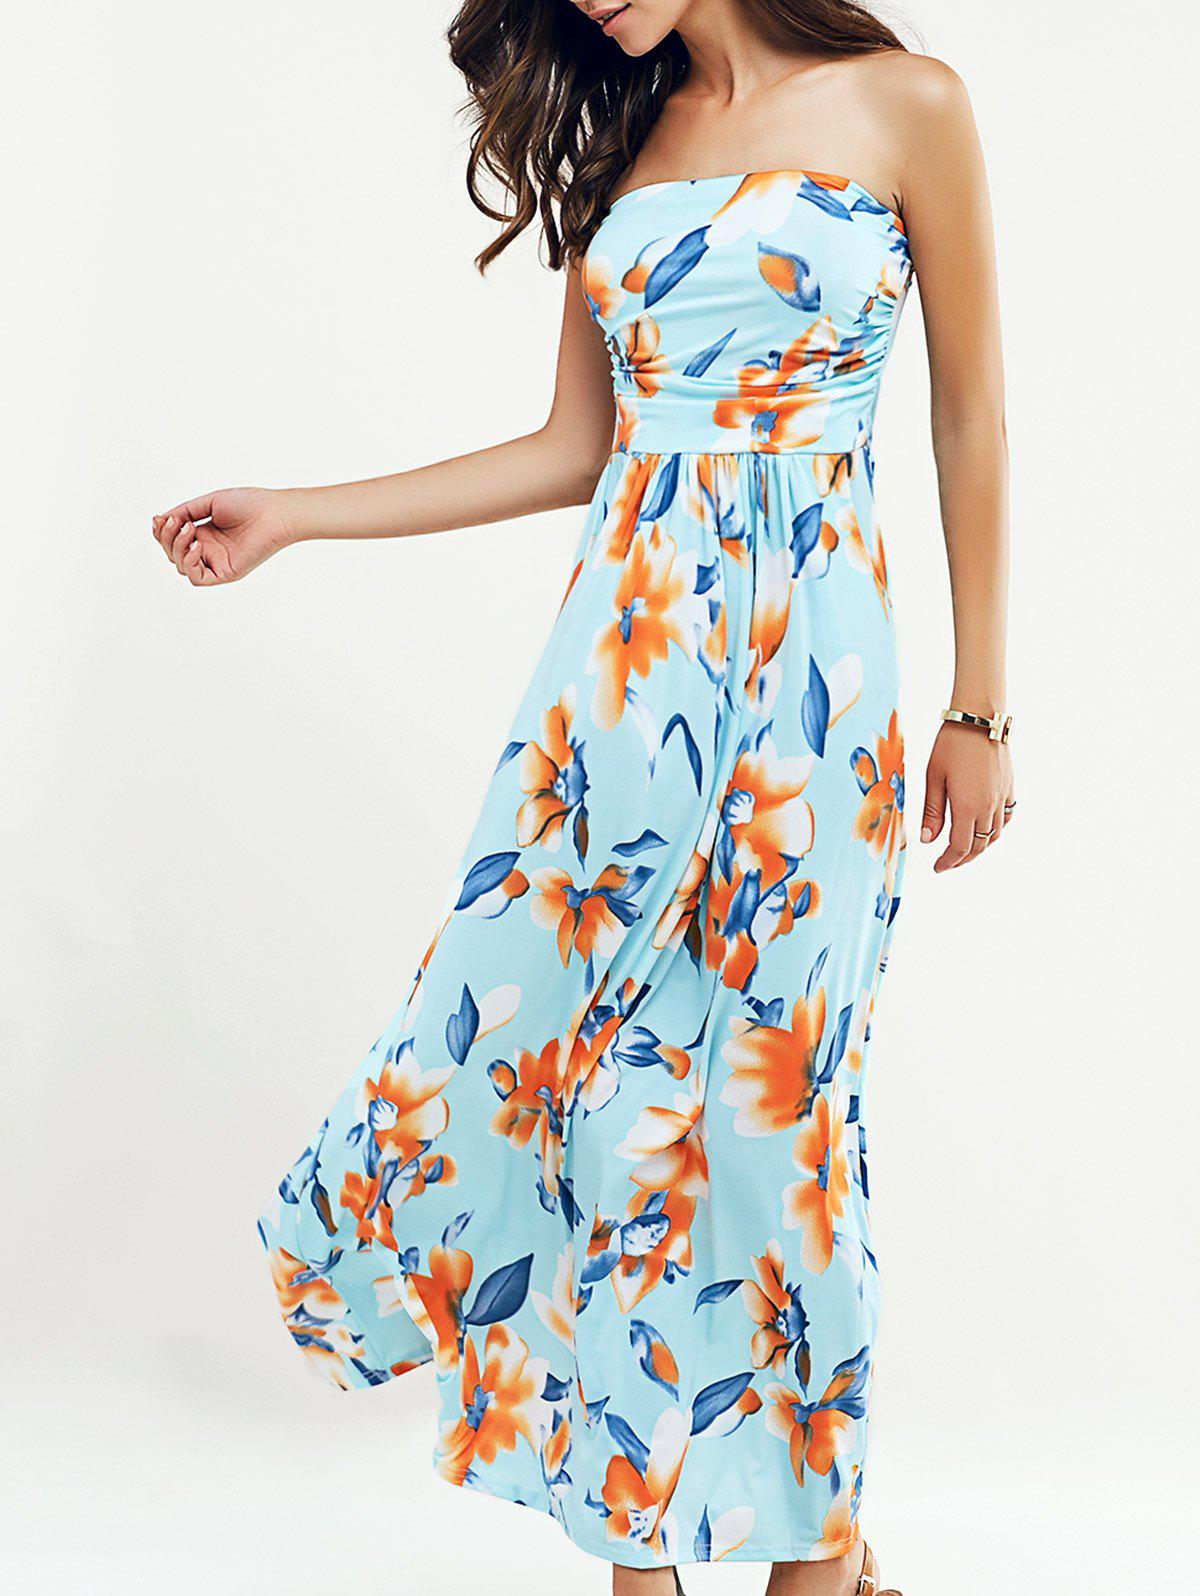 Strapless Floral Print Maxi Dress - LIGHT BLUE XL